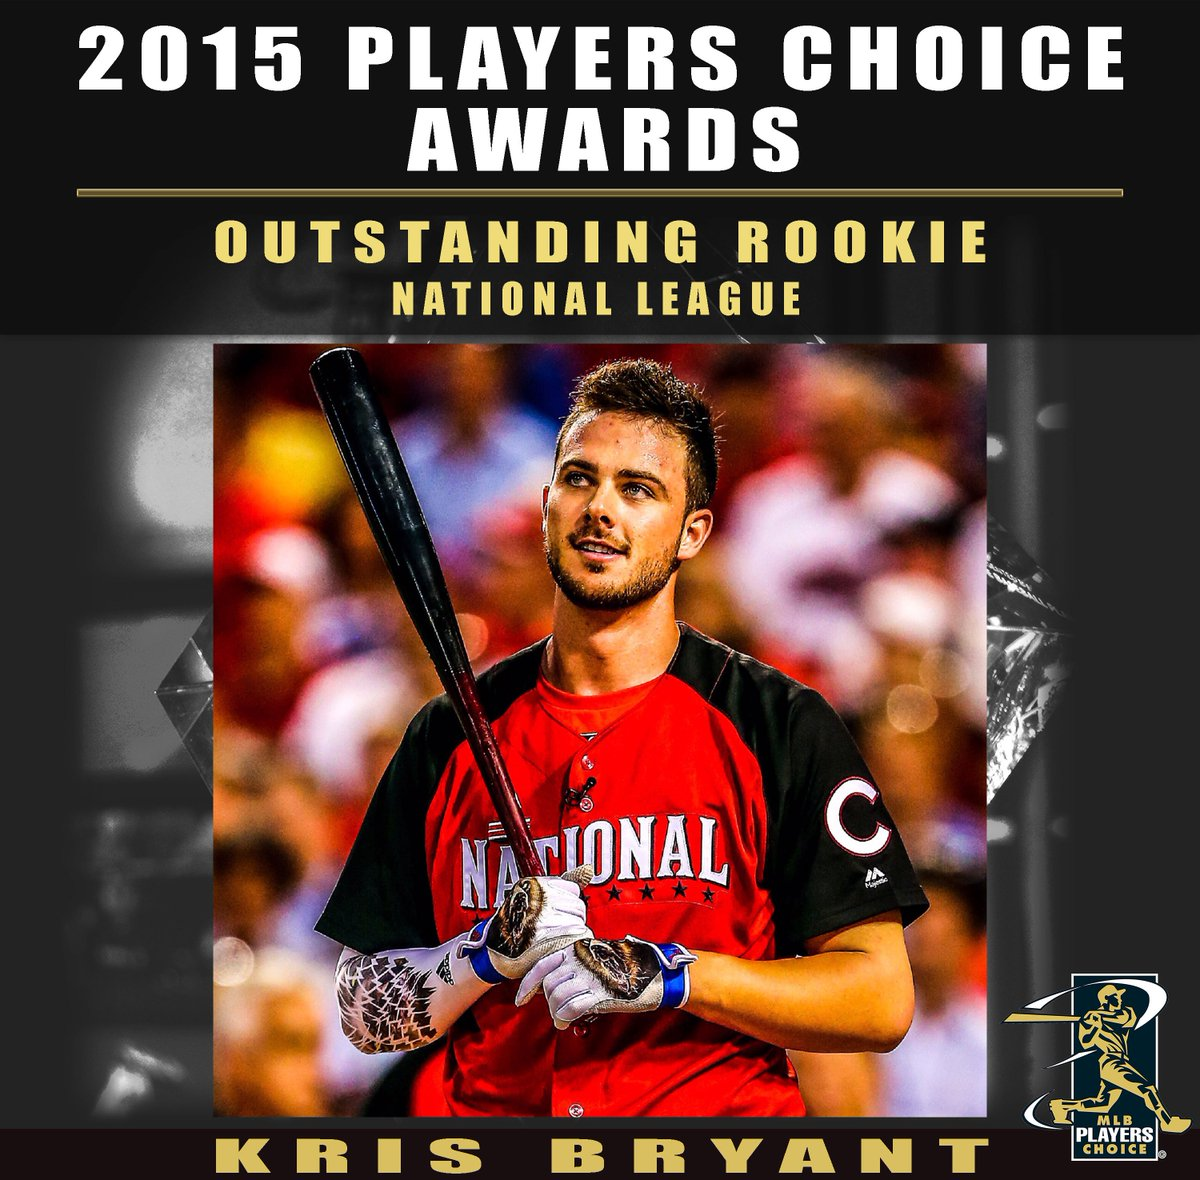 Congrats to @KrisBryant_23 @Cubs !! #PlayersChoiceAwards15  NL #OutstandingRookie as chose by @MLB_PLAYERS https://t.co/wNW0dSkcey